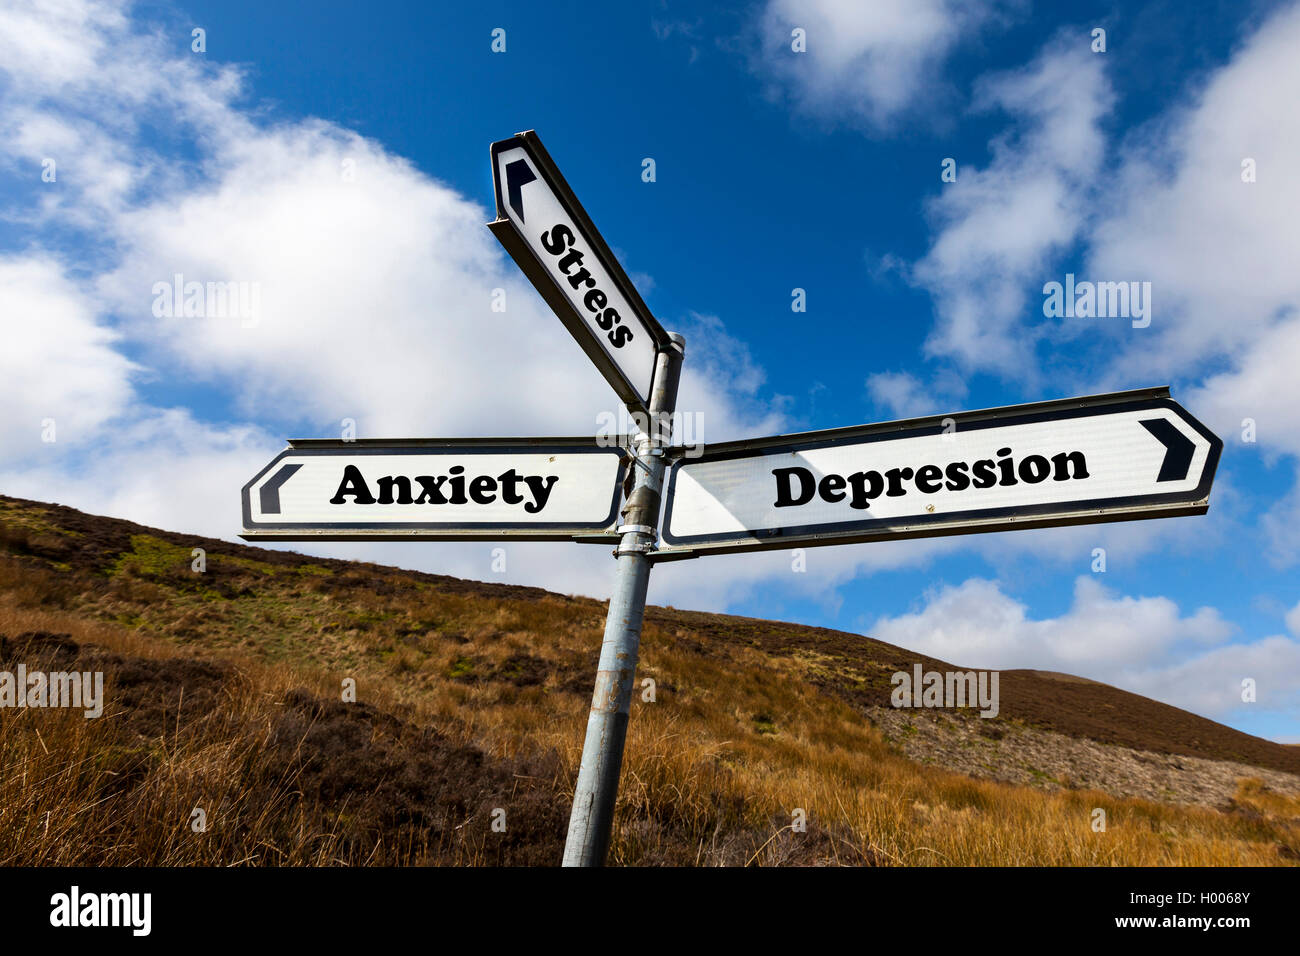 Depression anxiety stress mental health problem problems concept road sign help needed NHS unable to cope choice - Stock Image